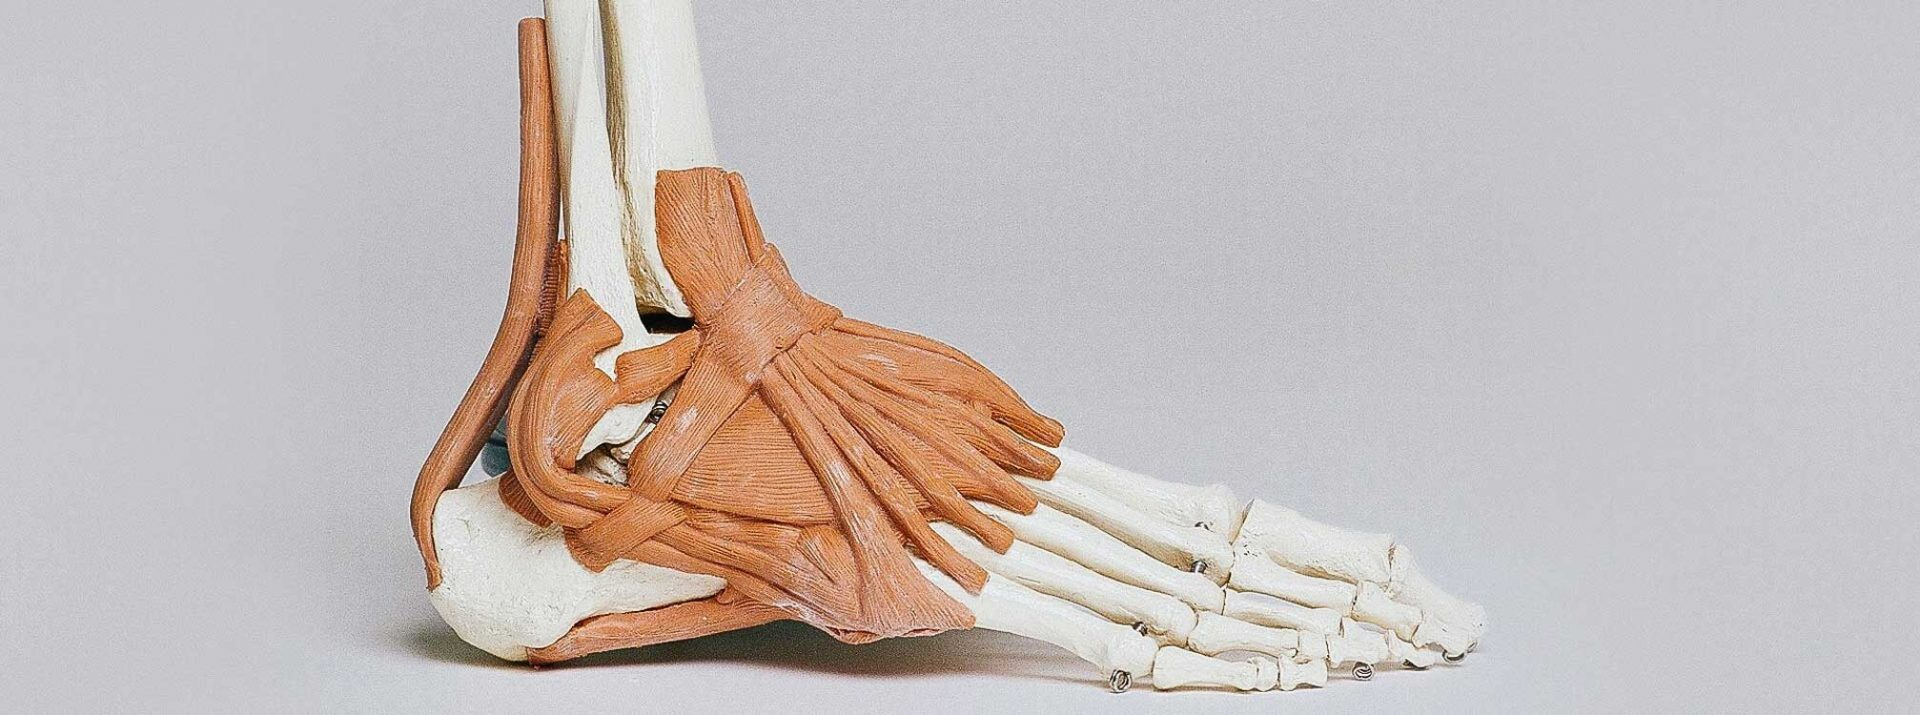 We offer highly specialized physiotherapy services